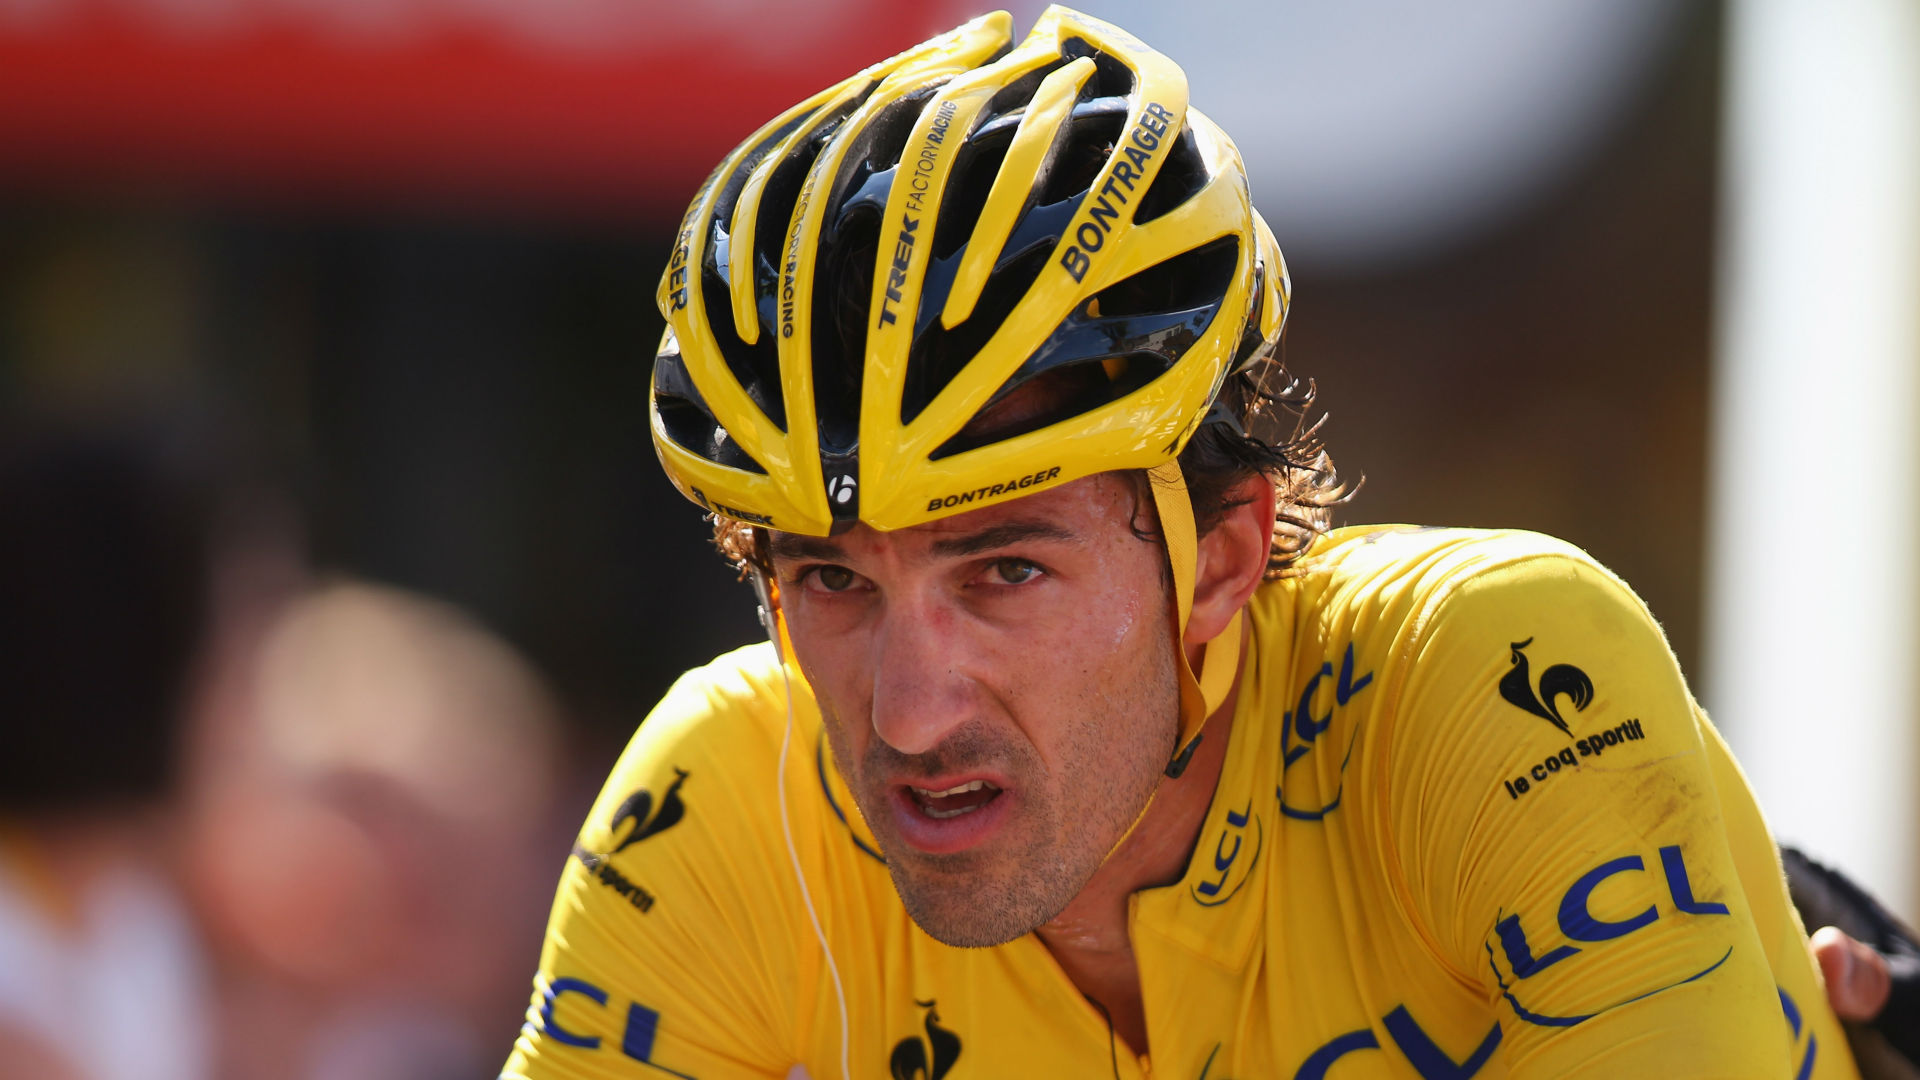 Double Olympic champion Fabian Cancellara is not convinced putting the Tour de France back by just a month is realistic.